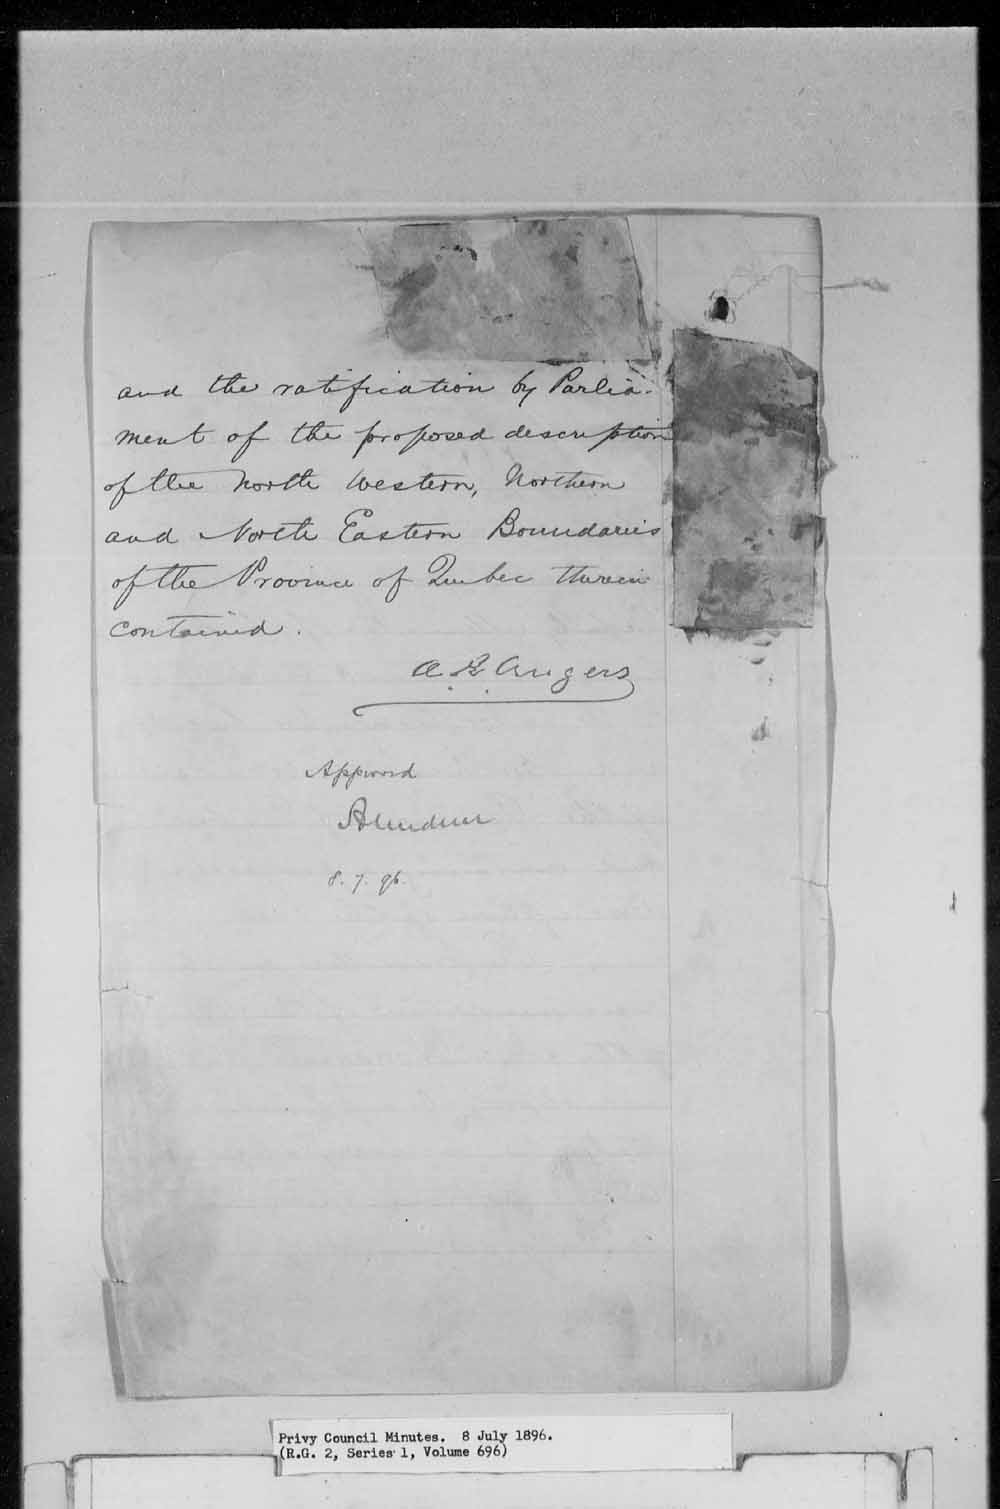 Digitized page of Orders in Council for Image No.: e003161792